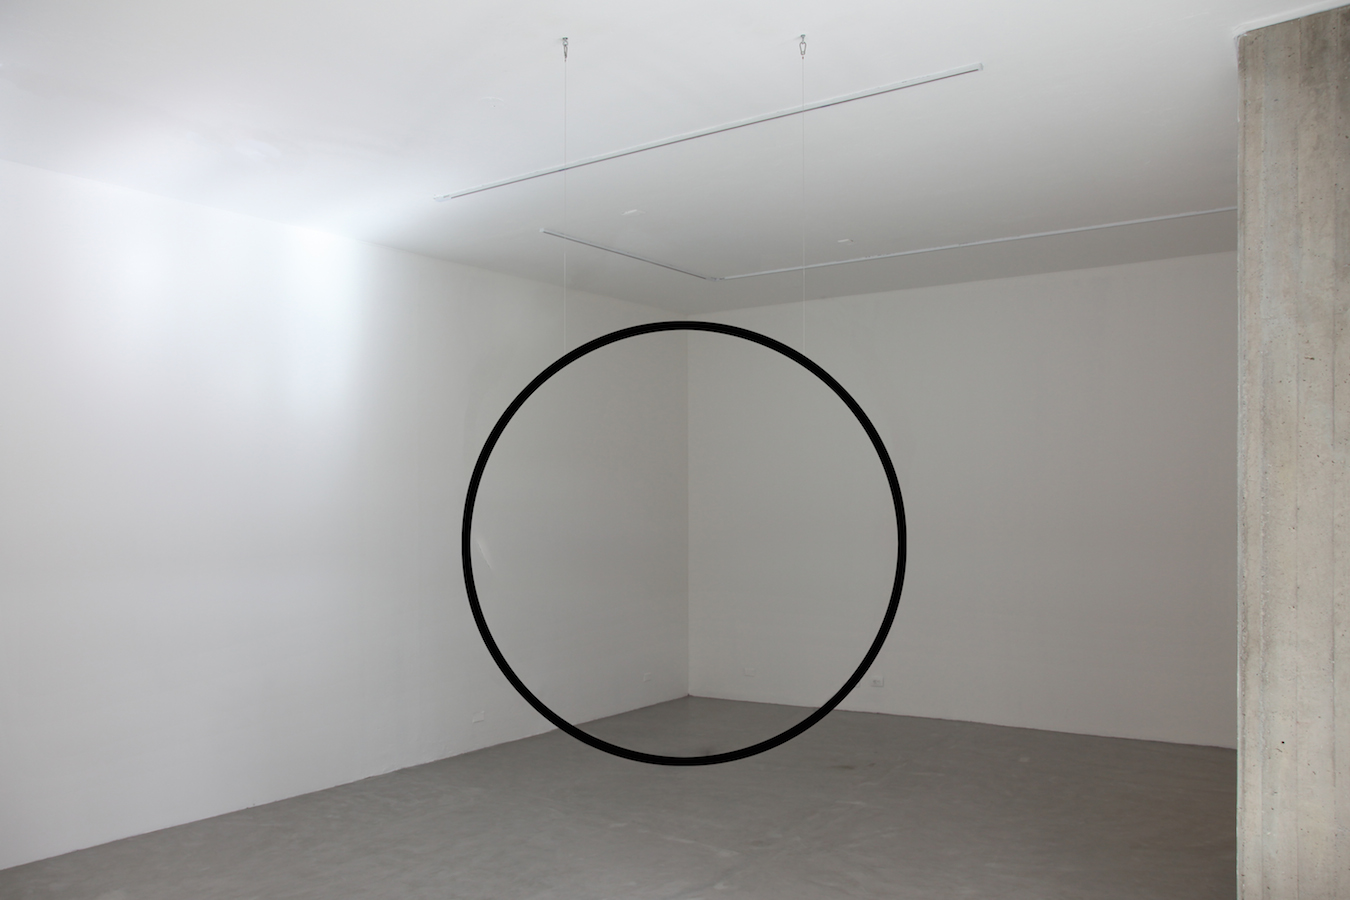 'Squaring the Circle', 2013, Installation View 'Limits of a Known Territory', 2015 | Troika (Eva Rucki, Sebastien Noel, Conny Freyer)